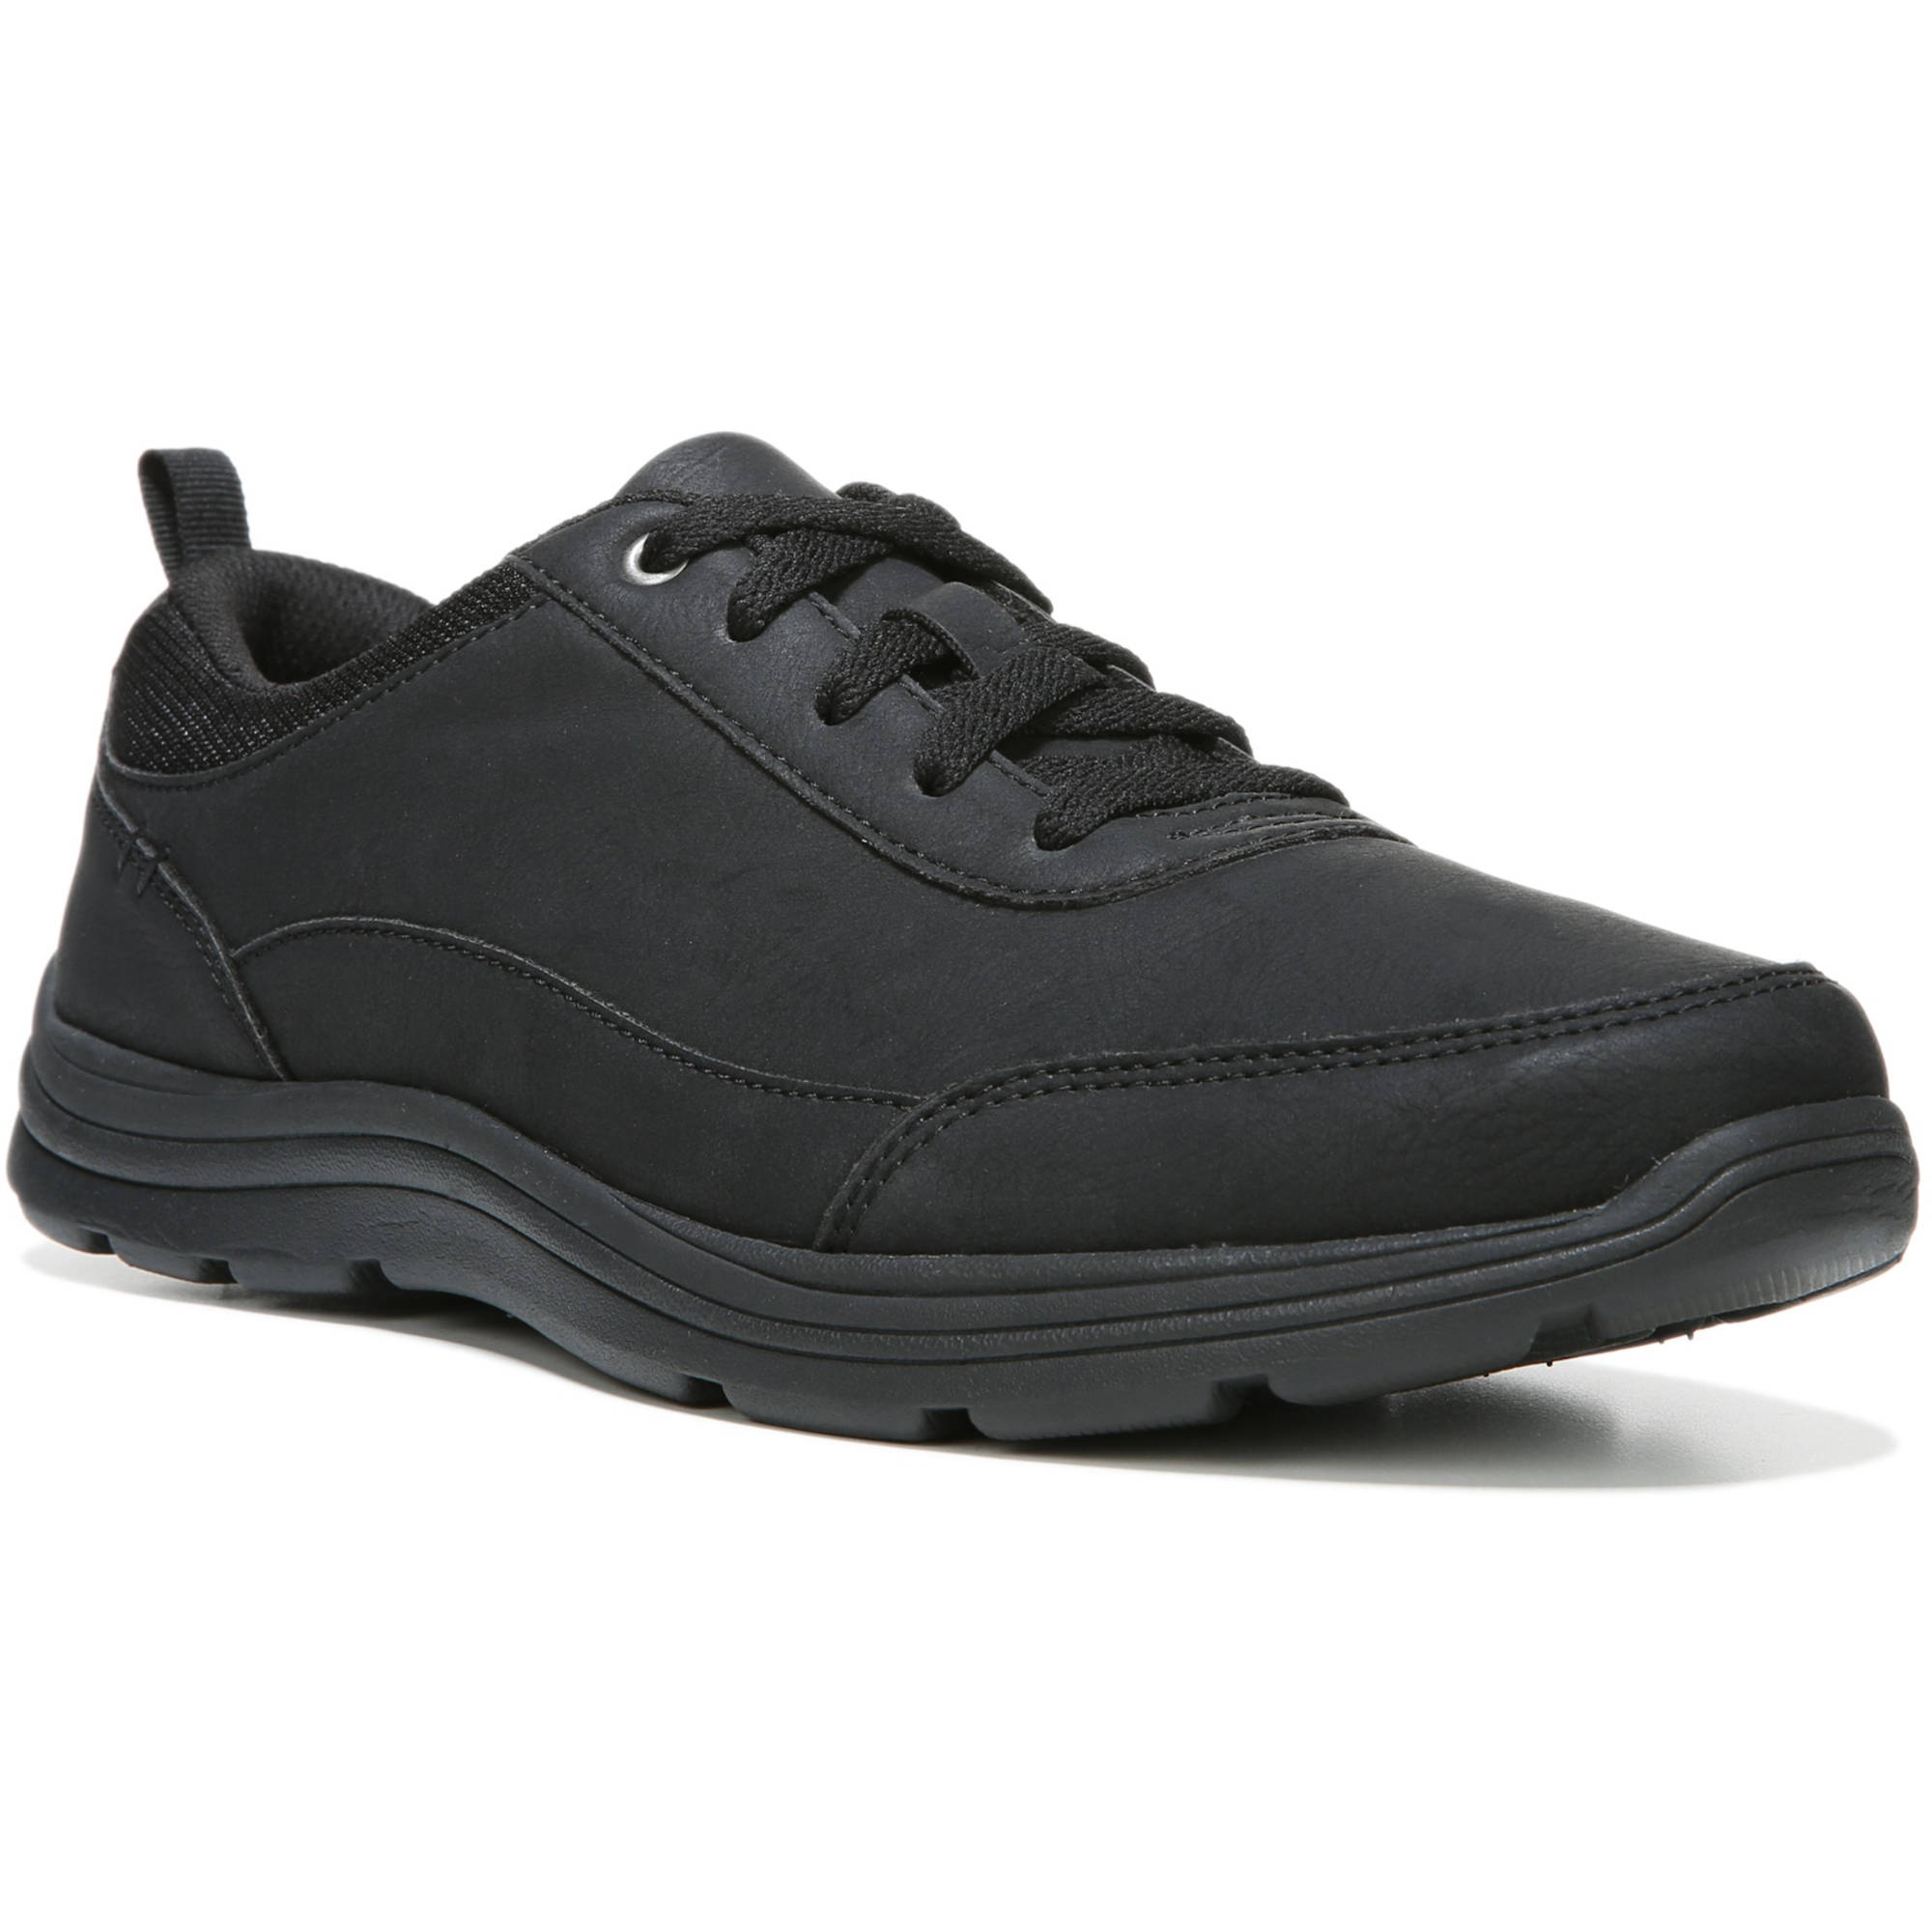 Dr. Scholls Men's Filo Memory Foam Shoe by